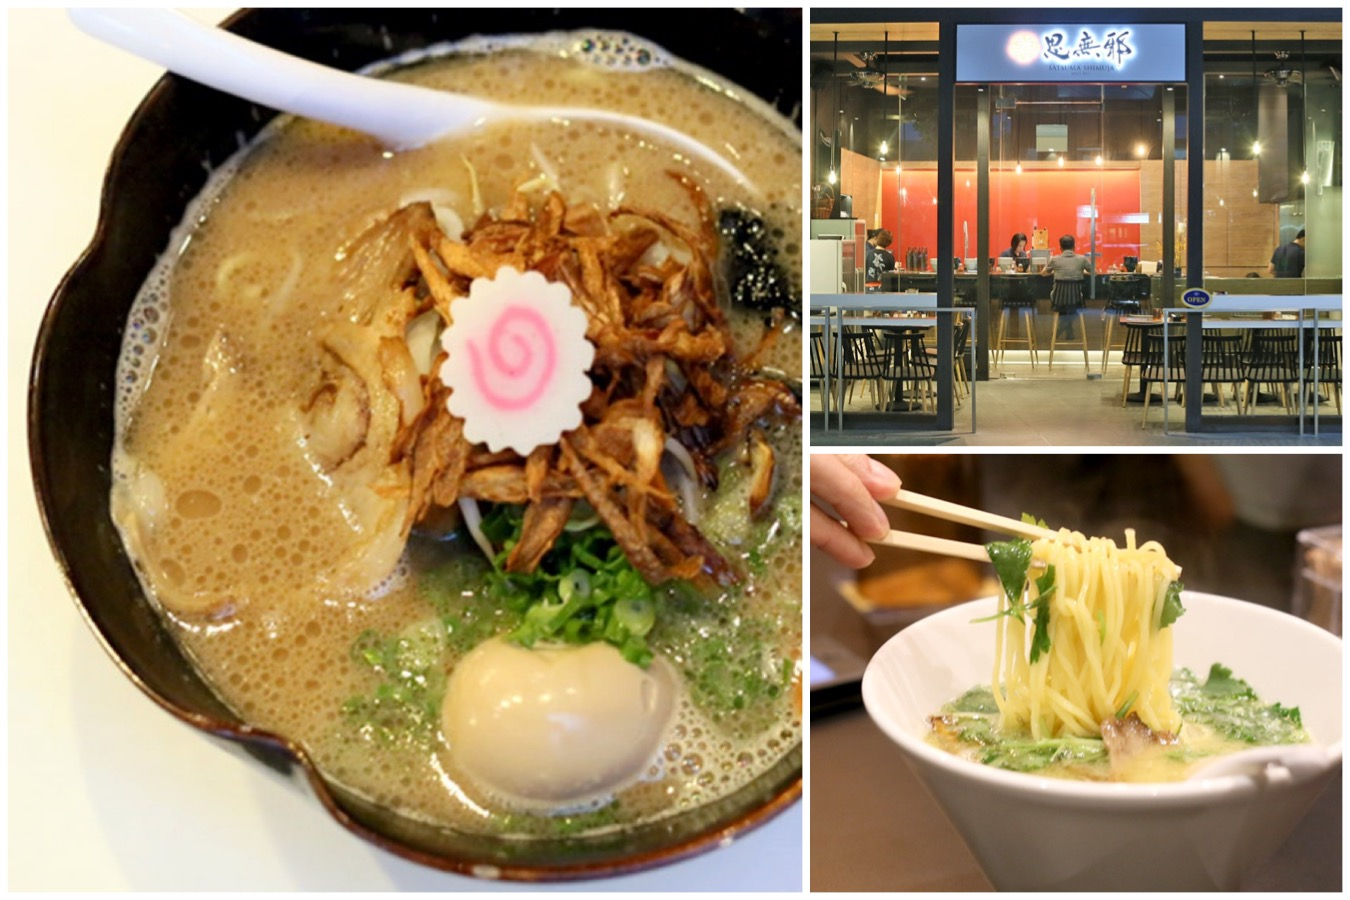 Satsuma Shimuja 薩摩思無邪 – Famous Kagoshima Ramen Shop Opens in Singapore At Tanjong Pagar